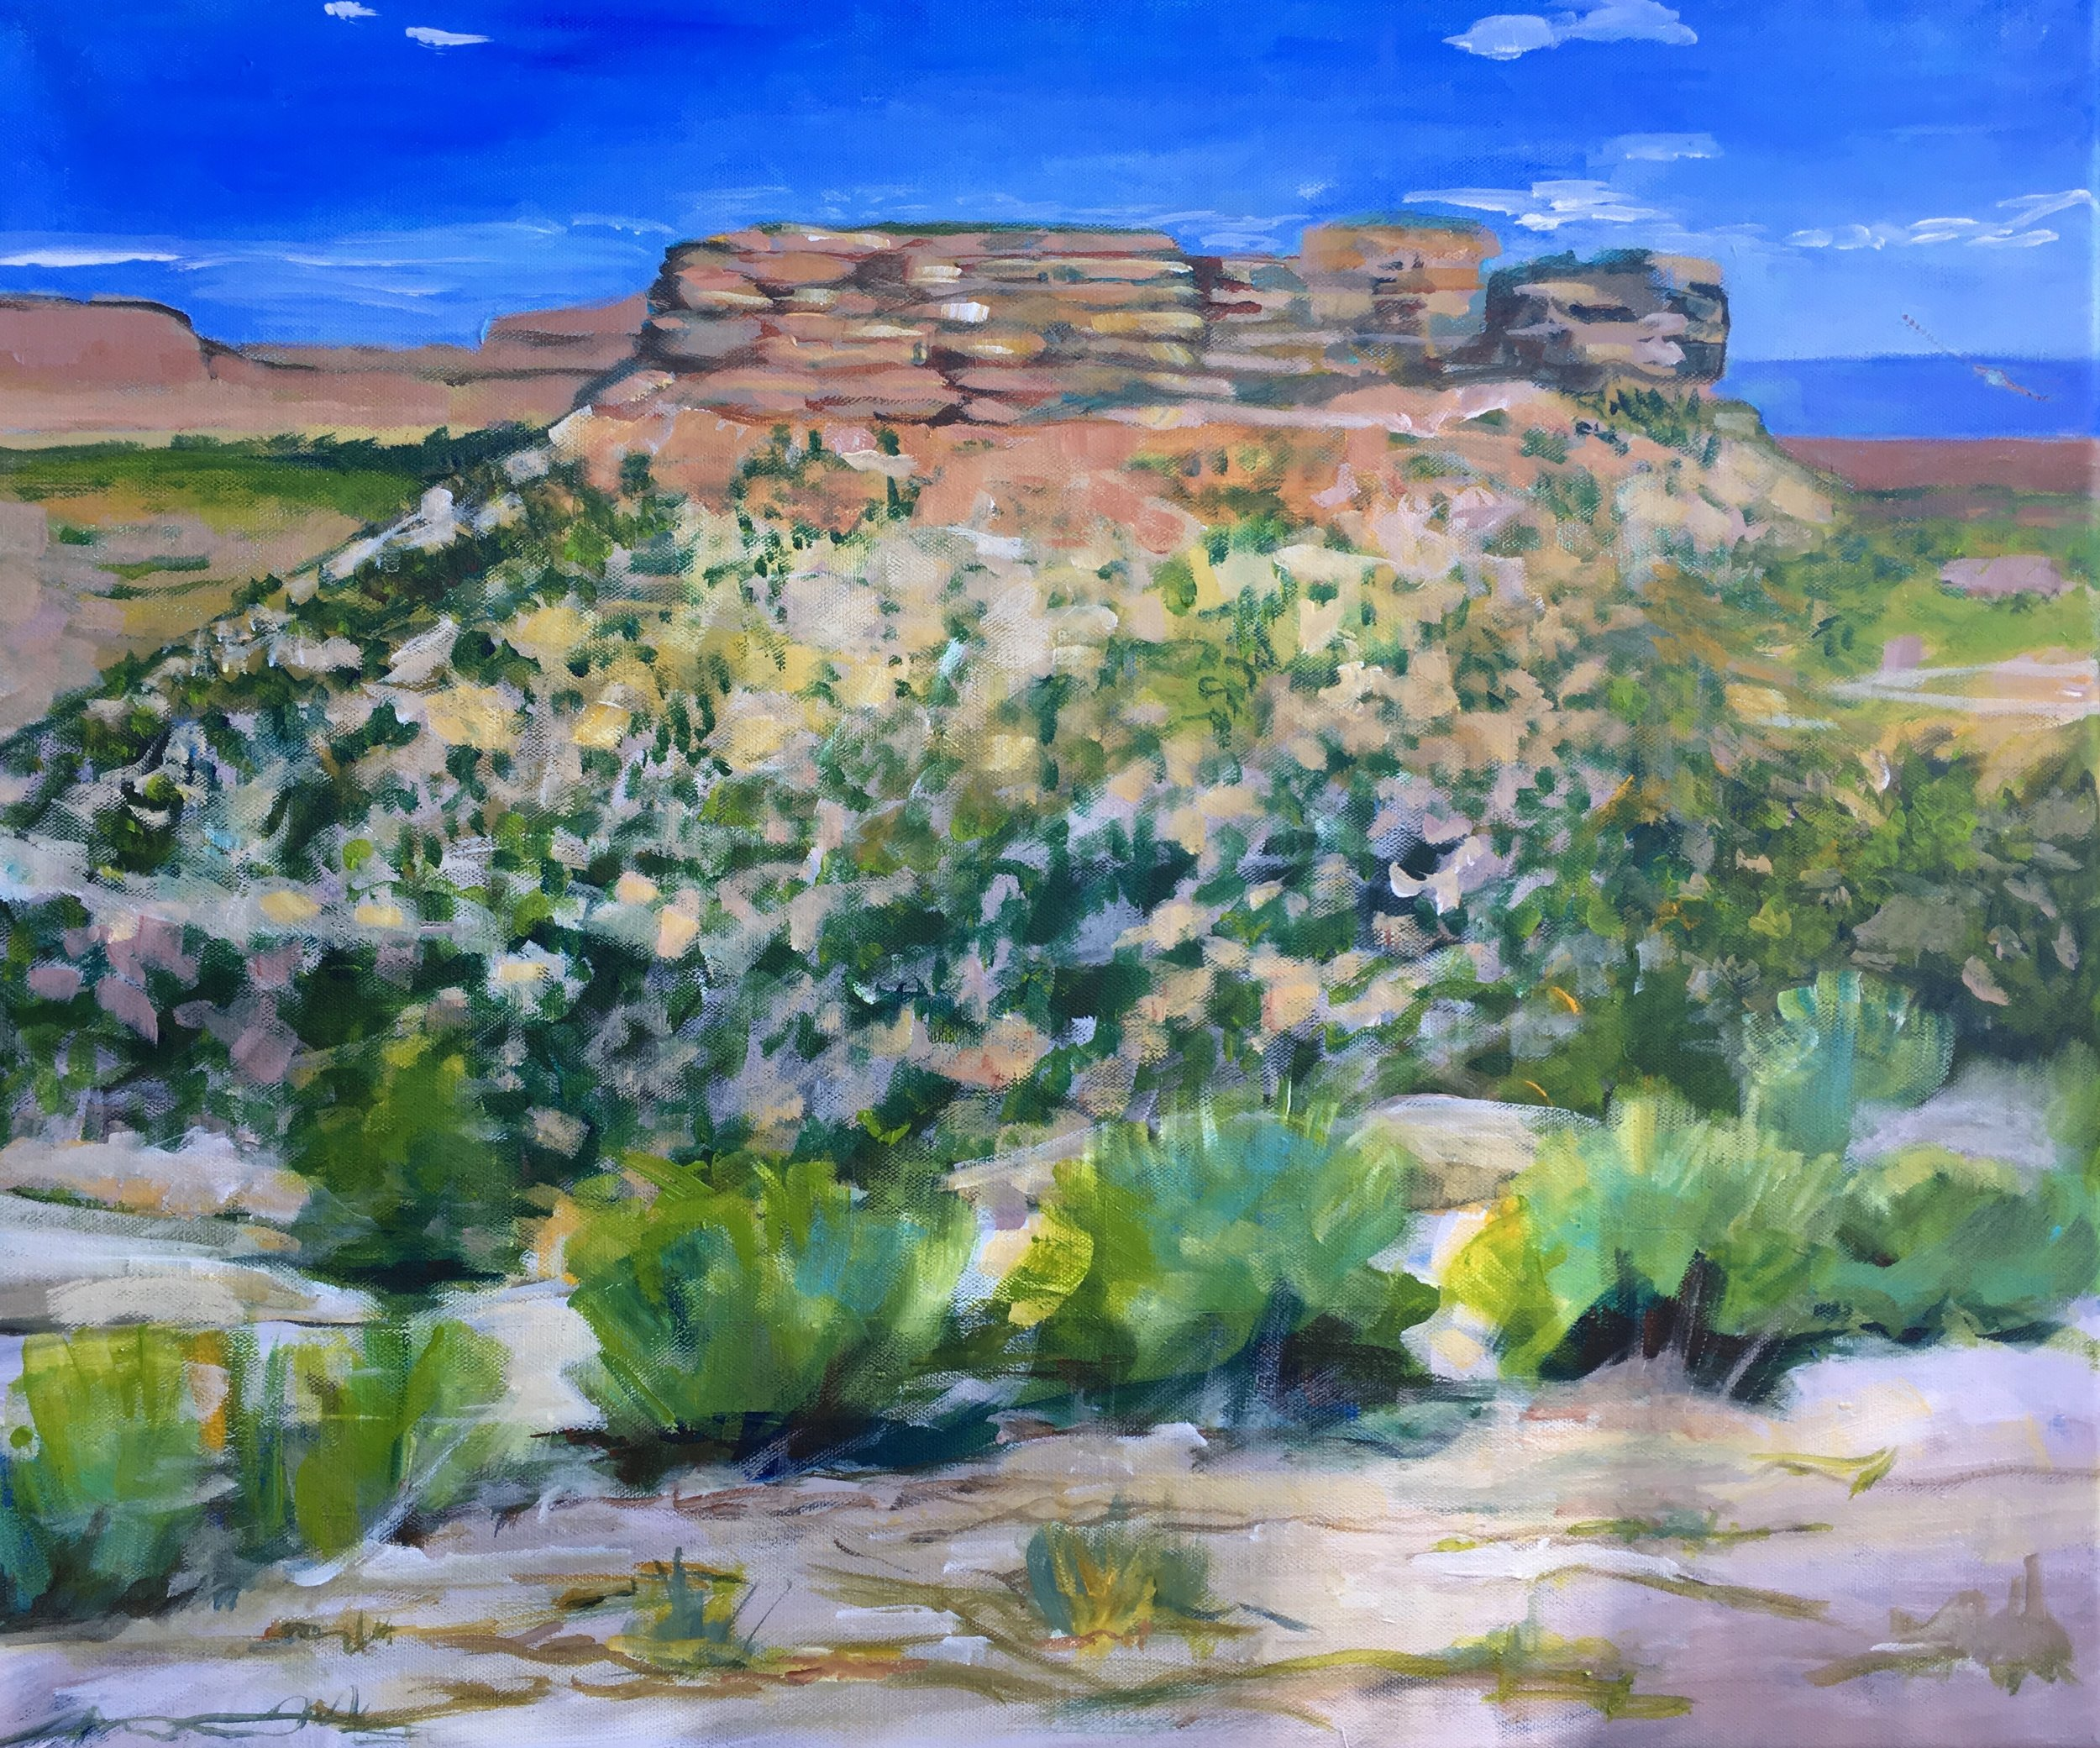 Umcompahgre National Forest, Colorado Plateau. Acrylic painting.